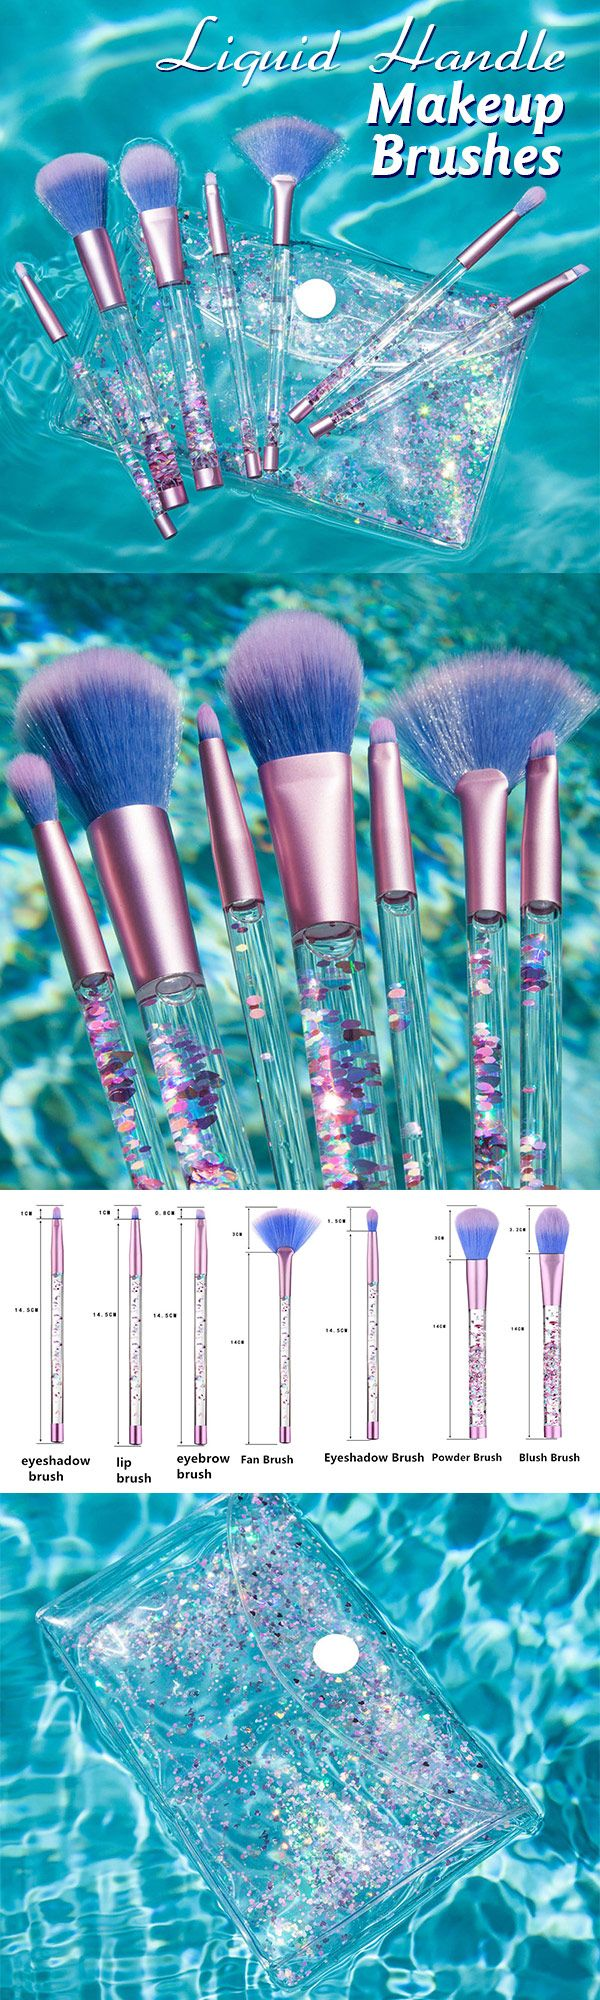 7Pcs/Set Glitter Mermaid Liquid Handle Makeup Brushes Set Eyeshadow Powder Blush Brush